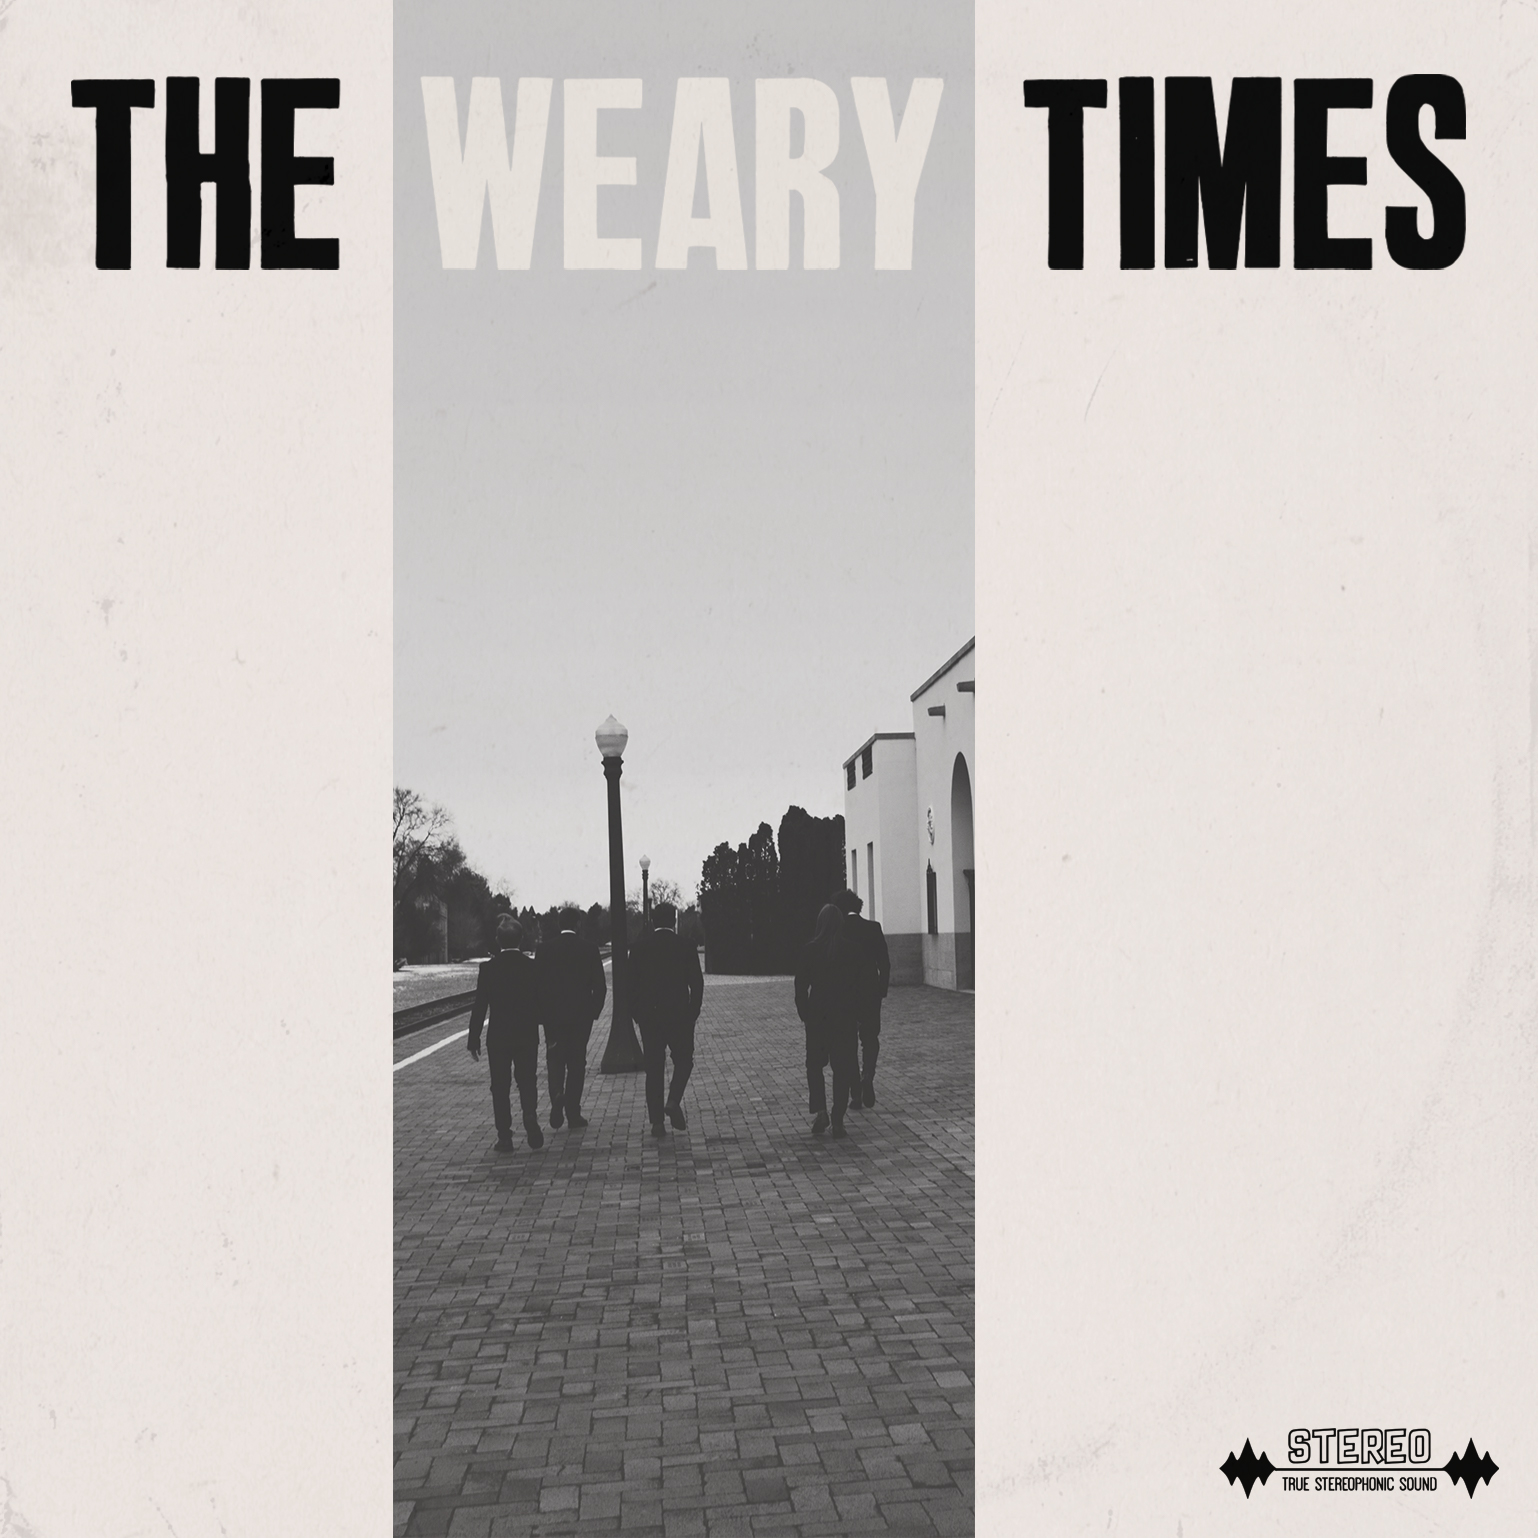 The Weary Times - The Weary Times